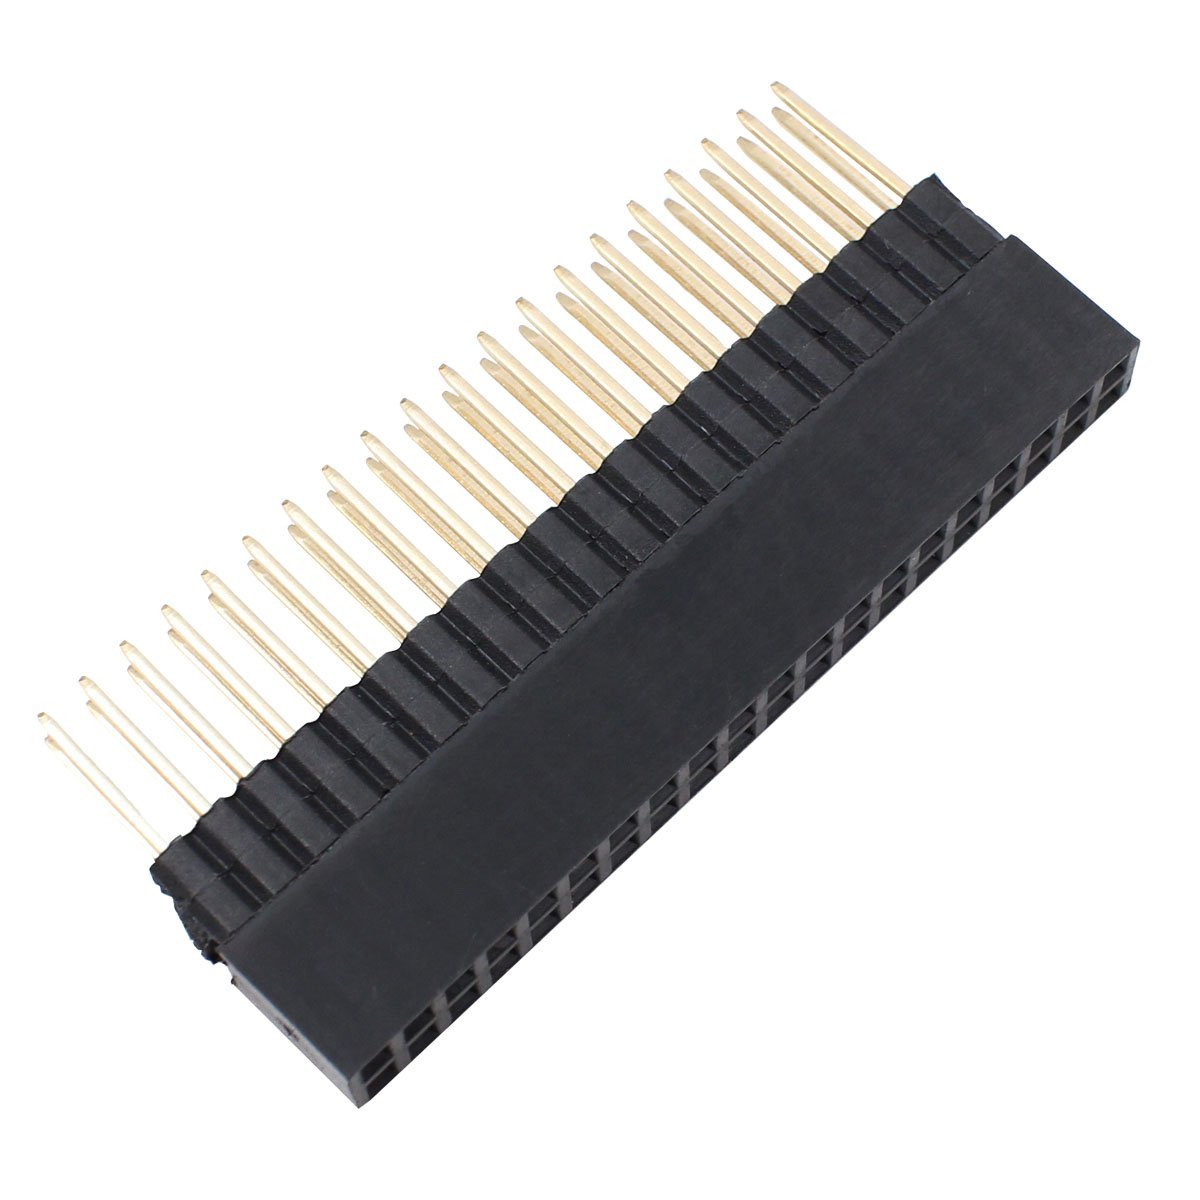 2x20 Pins Extra Tall Female 0.1'' Pitch Stacking Header for Raspberry Pi A+ Pi Model B+ Pi 2 Pi 3 (pack of 5)